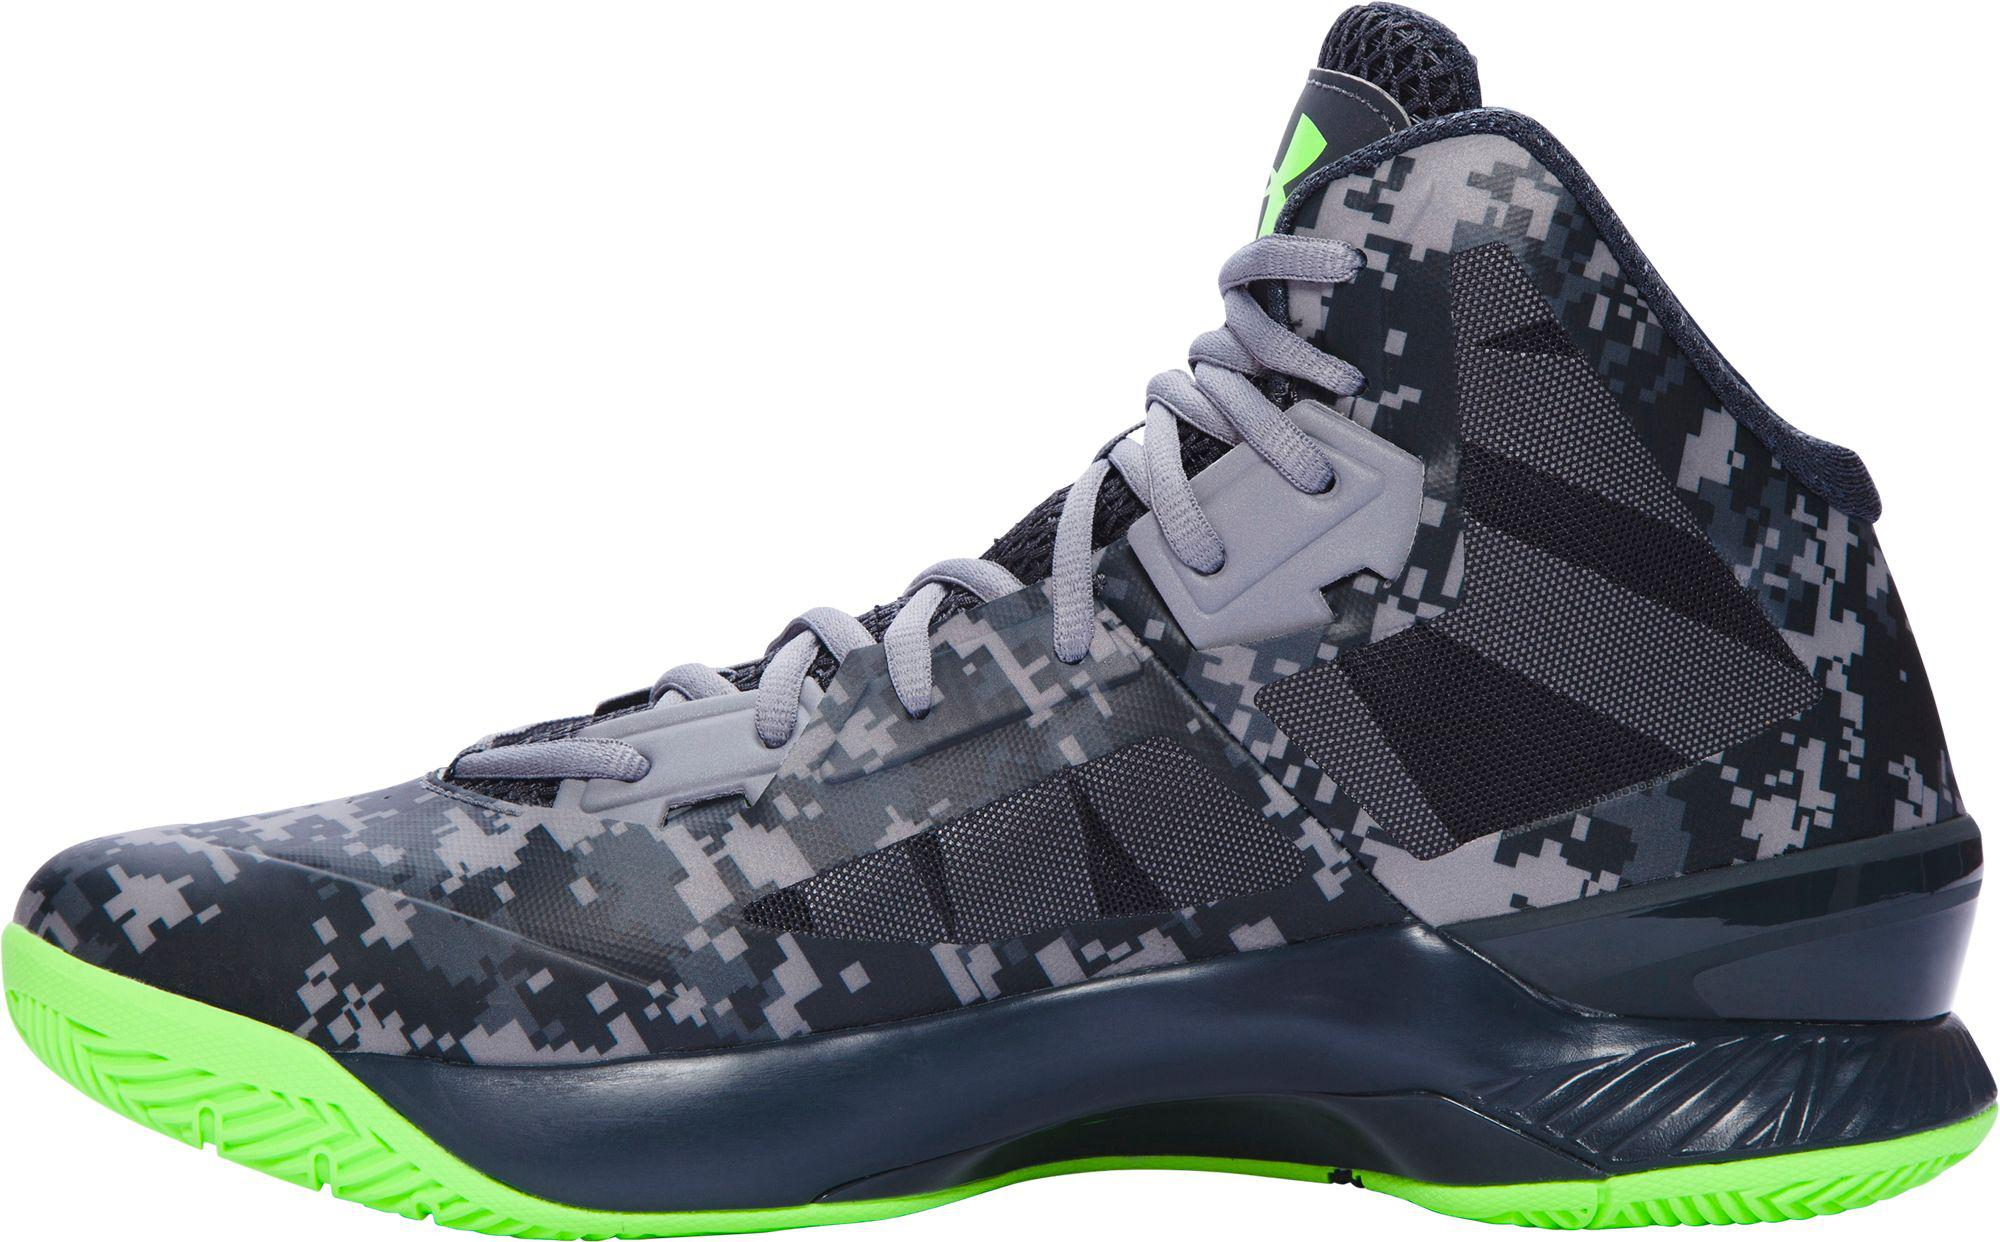 fe98ad3fdafc Under Armour - Multicolor Clutchfit Lightning Basketball Shoes for Men -  Lyst